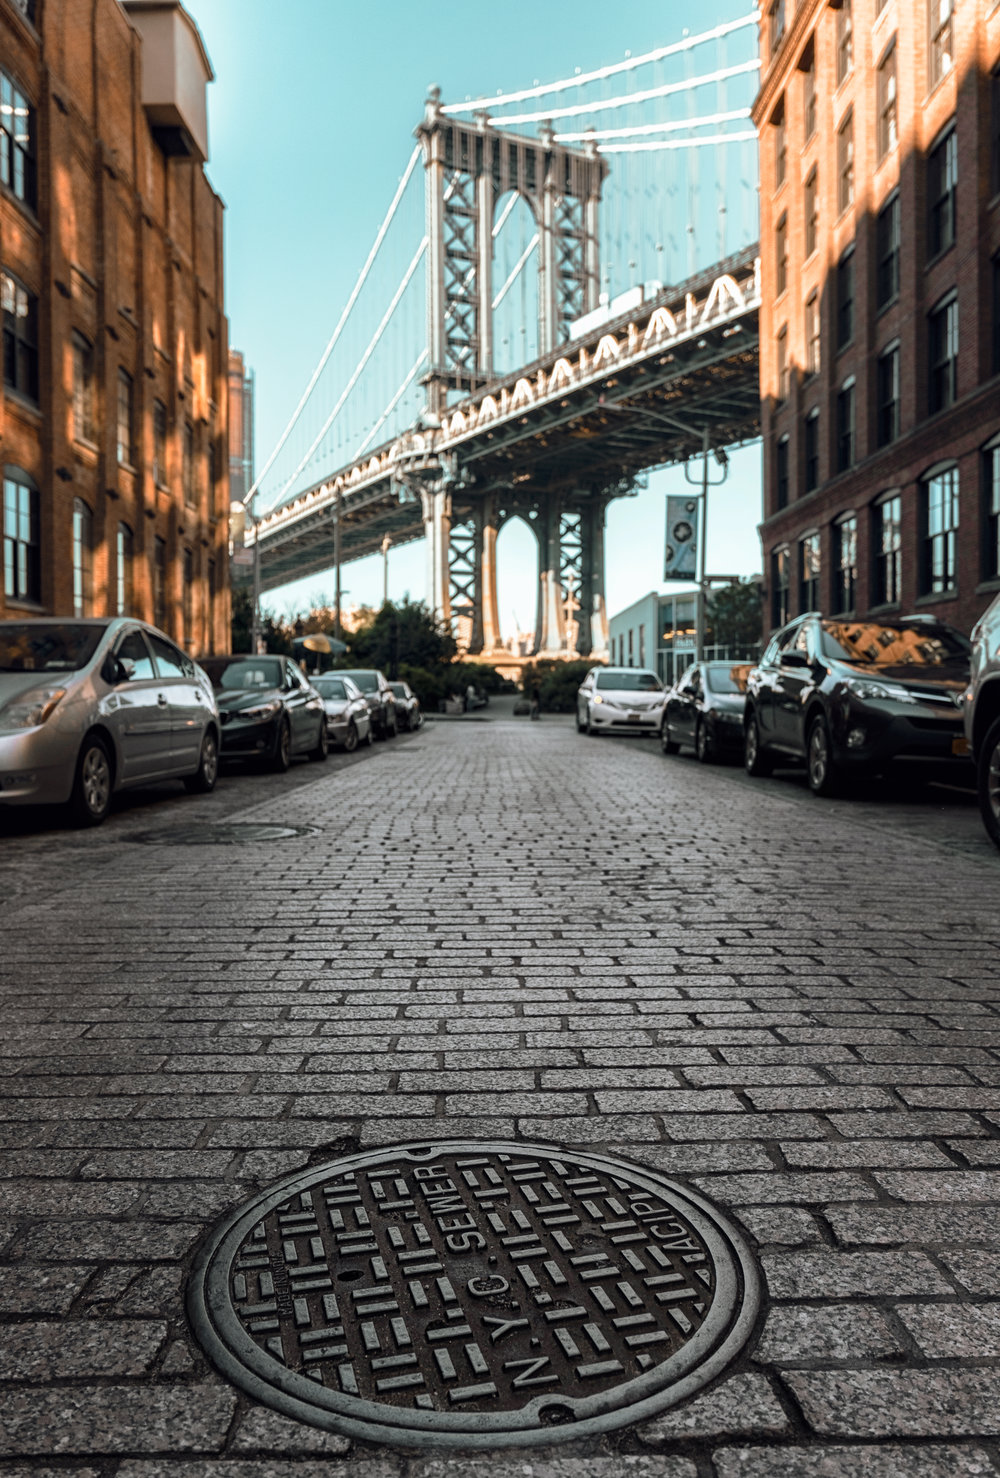 Manhatten Bridge - Dumbo.